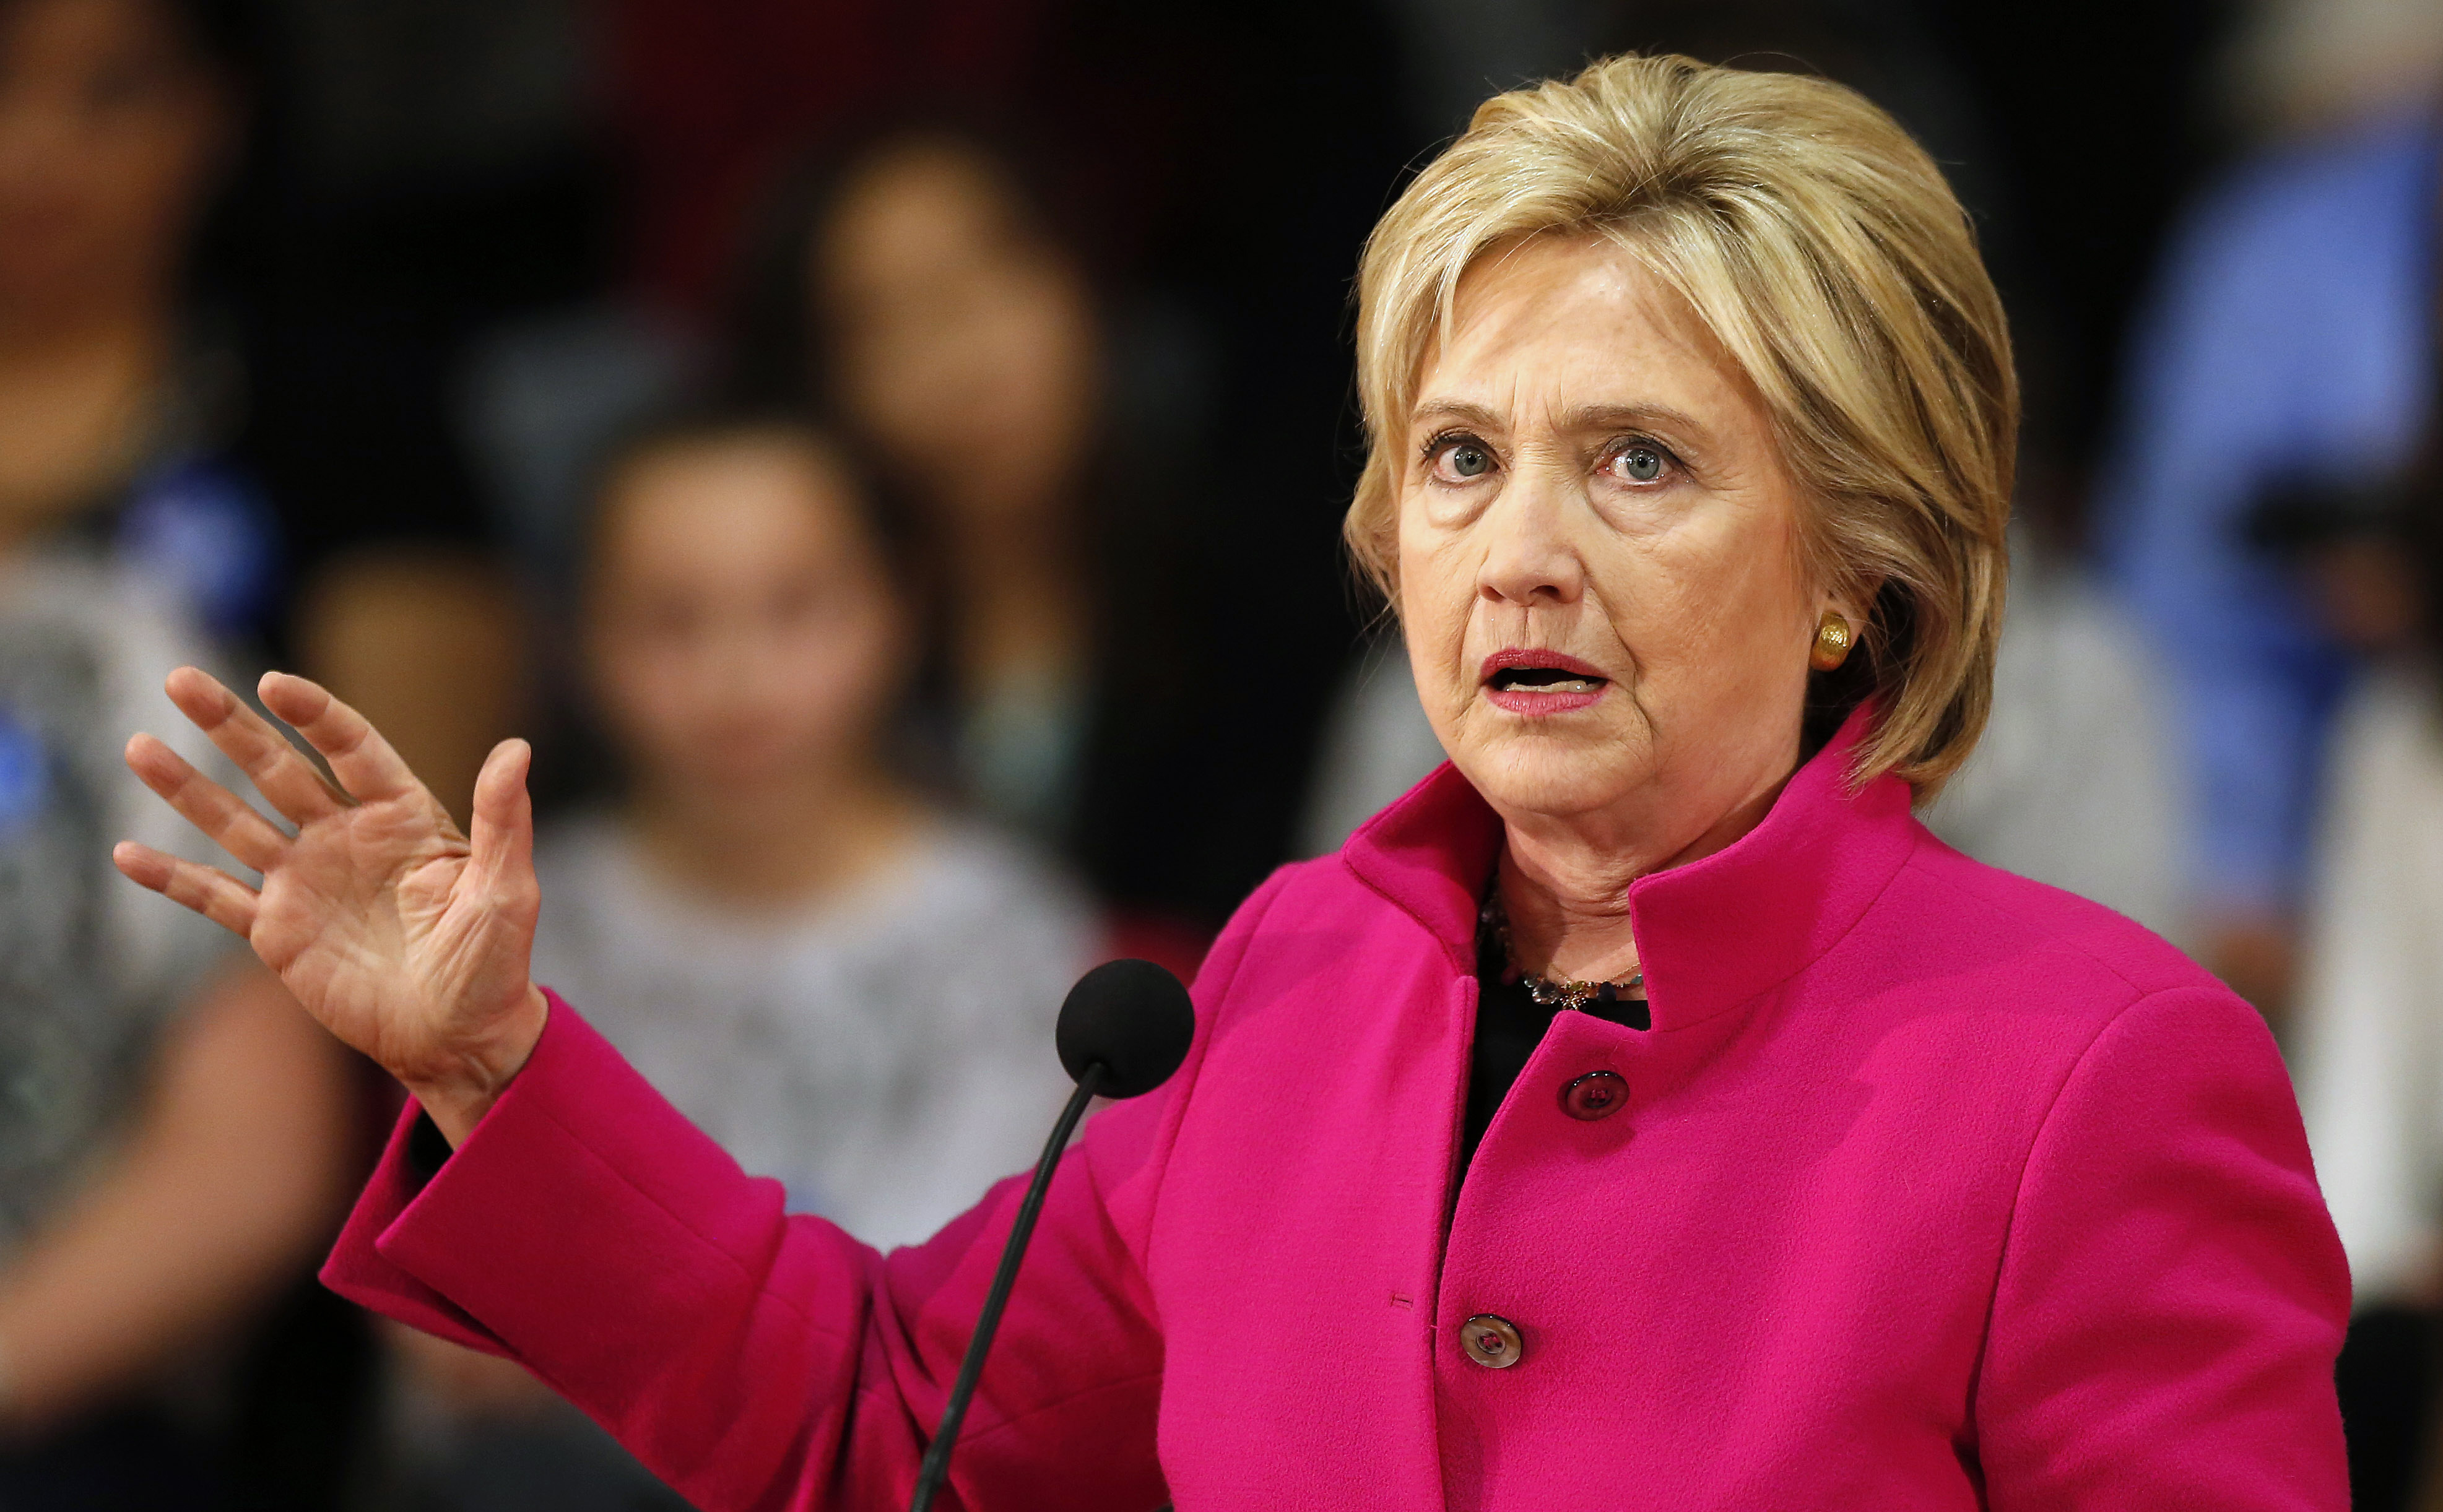 Democratic presidential candidate Hillary Clinton speaks during a campaign stop Tuesday, Dec. 8, 2015, in Salem, N.H.